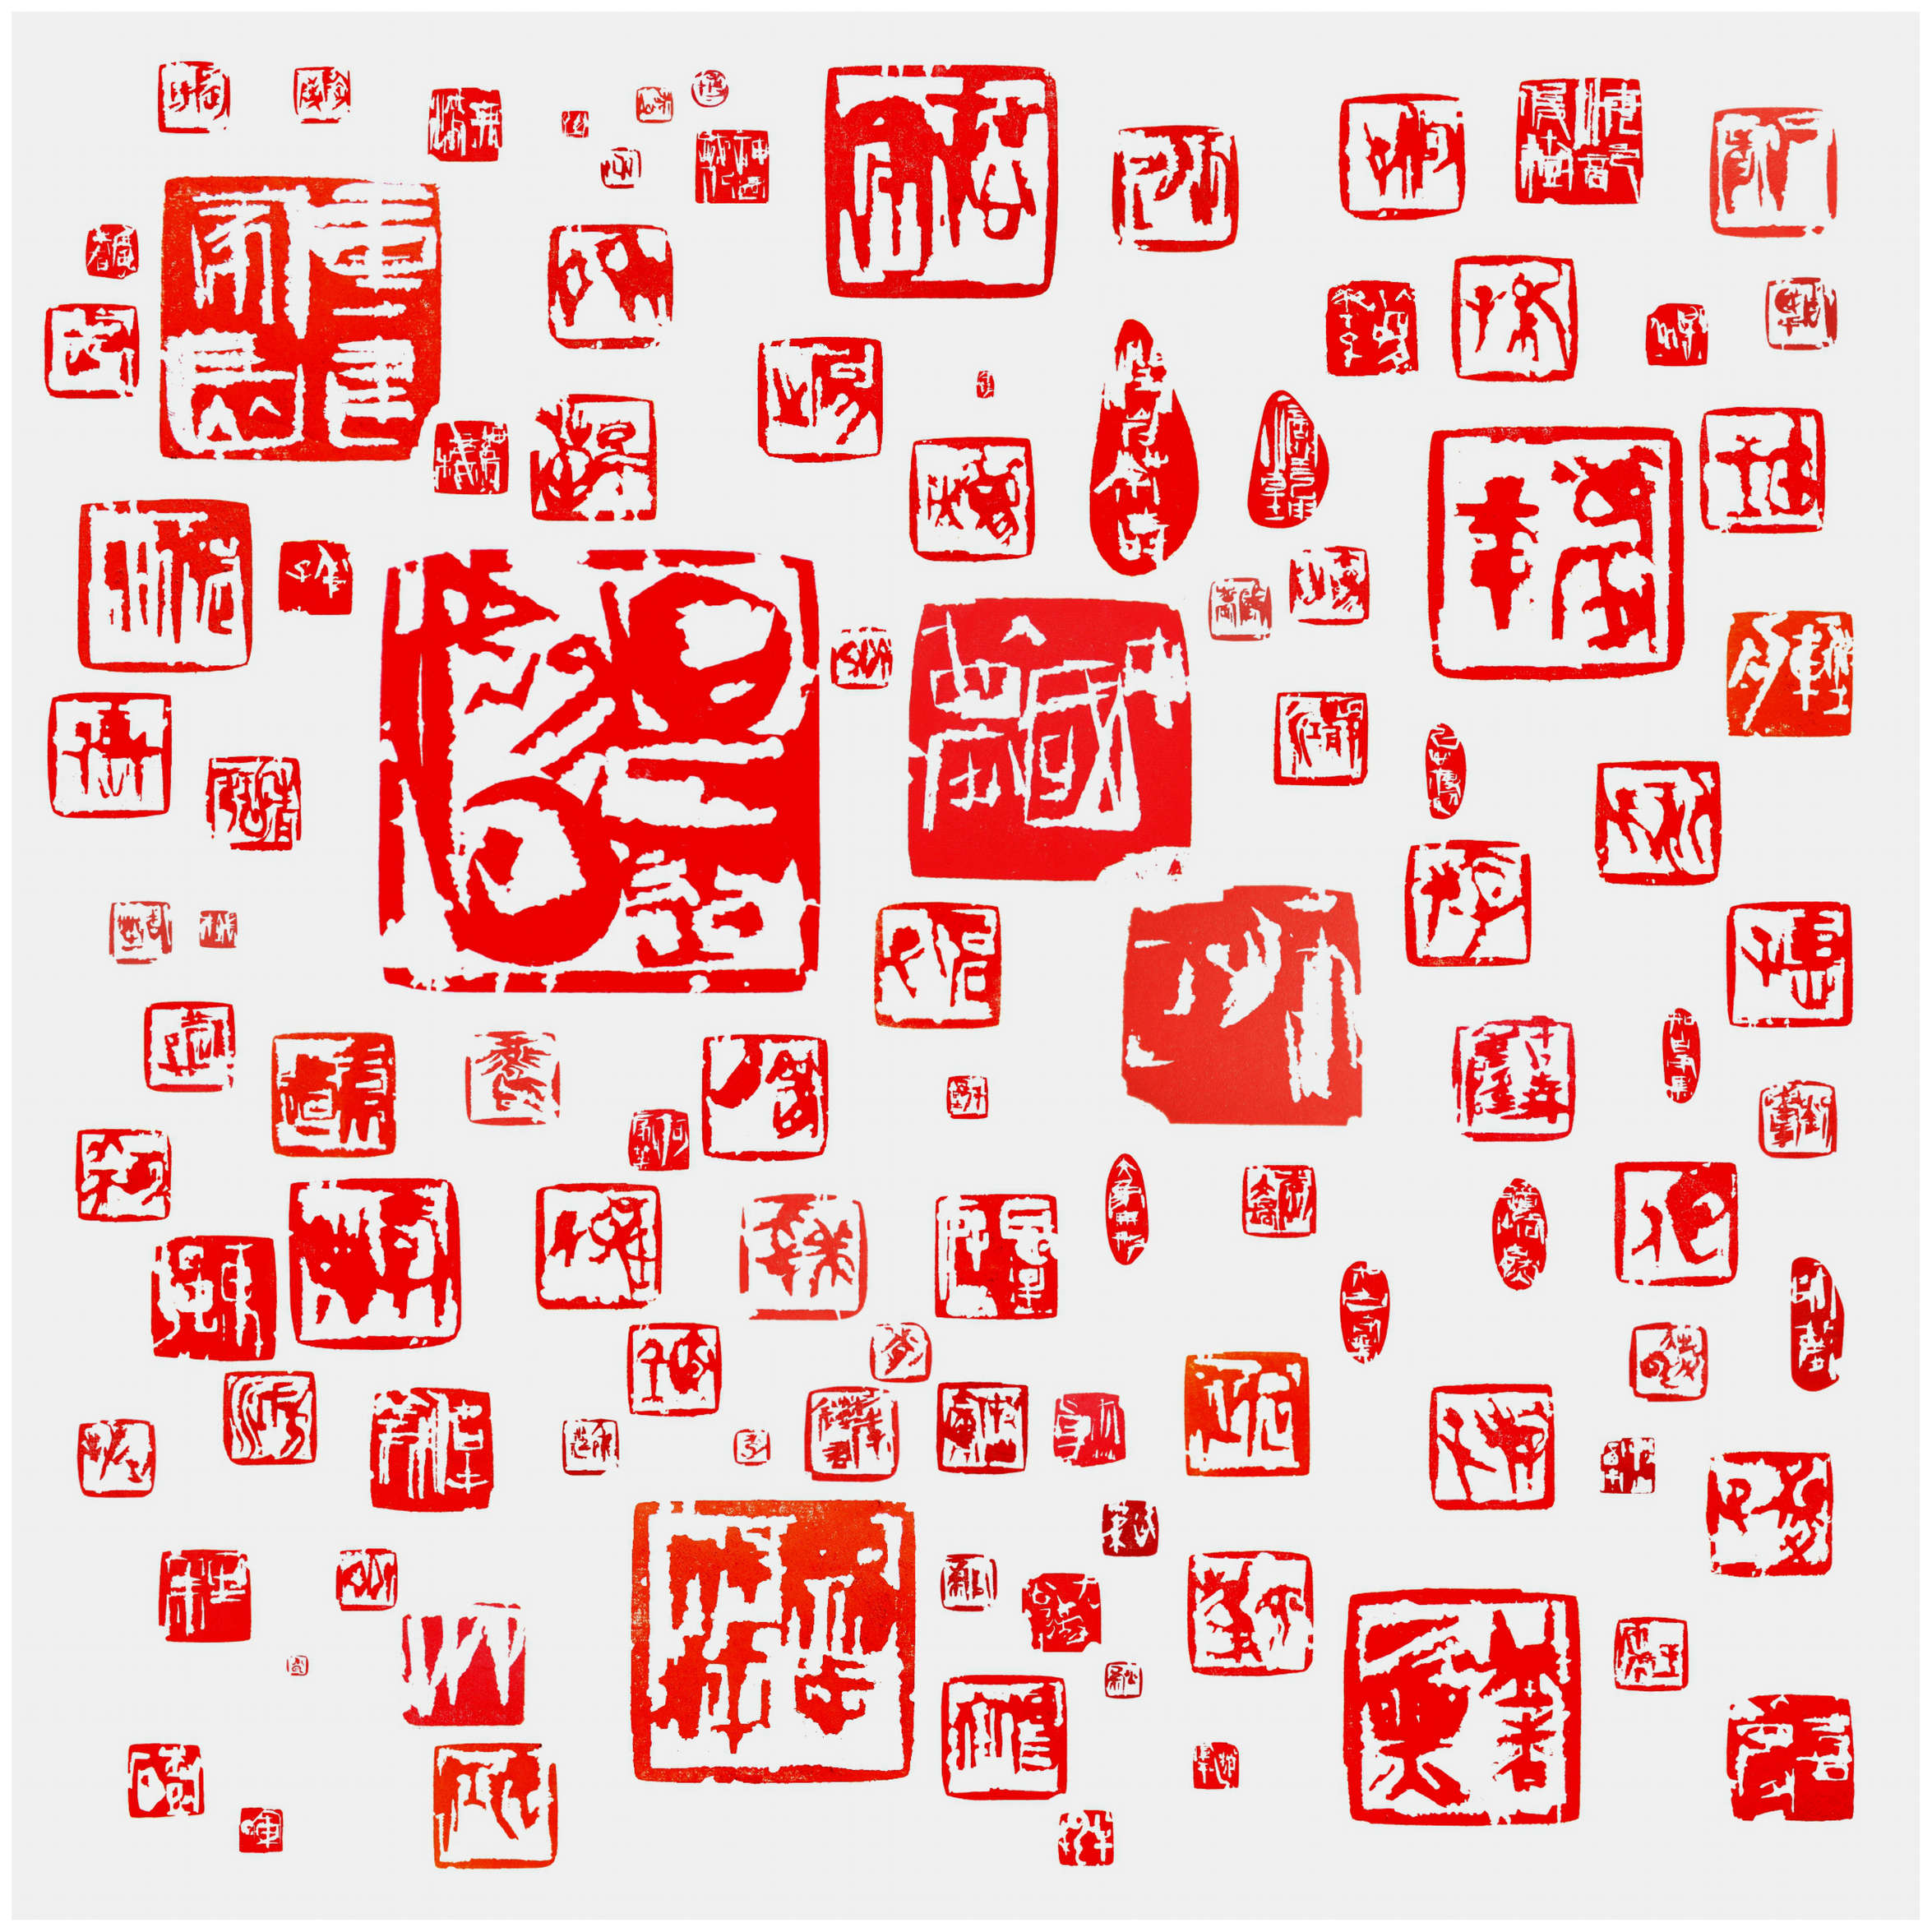 image-of-the-collection-of-freehand-style-chinese-seal-engravings-carved-by-artist-qi-hong-sai-koh.jpg